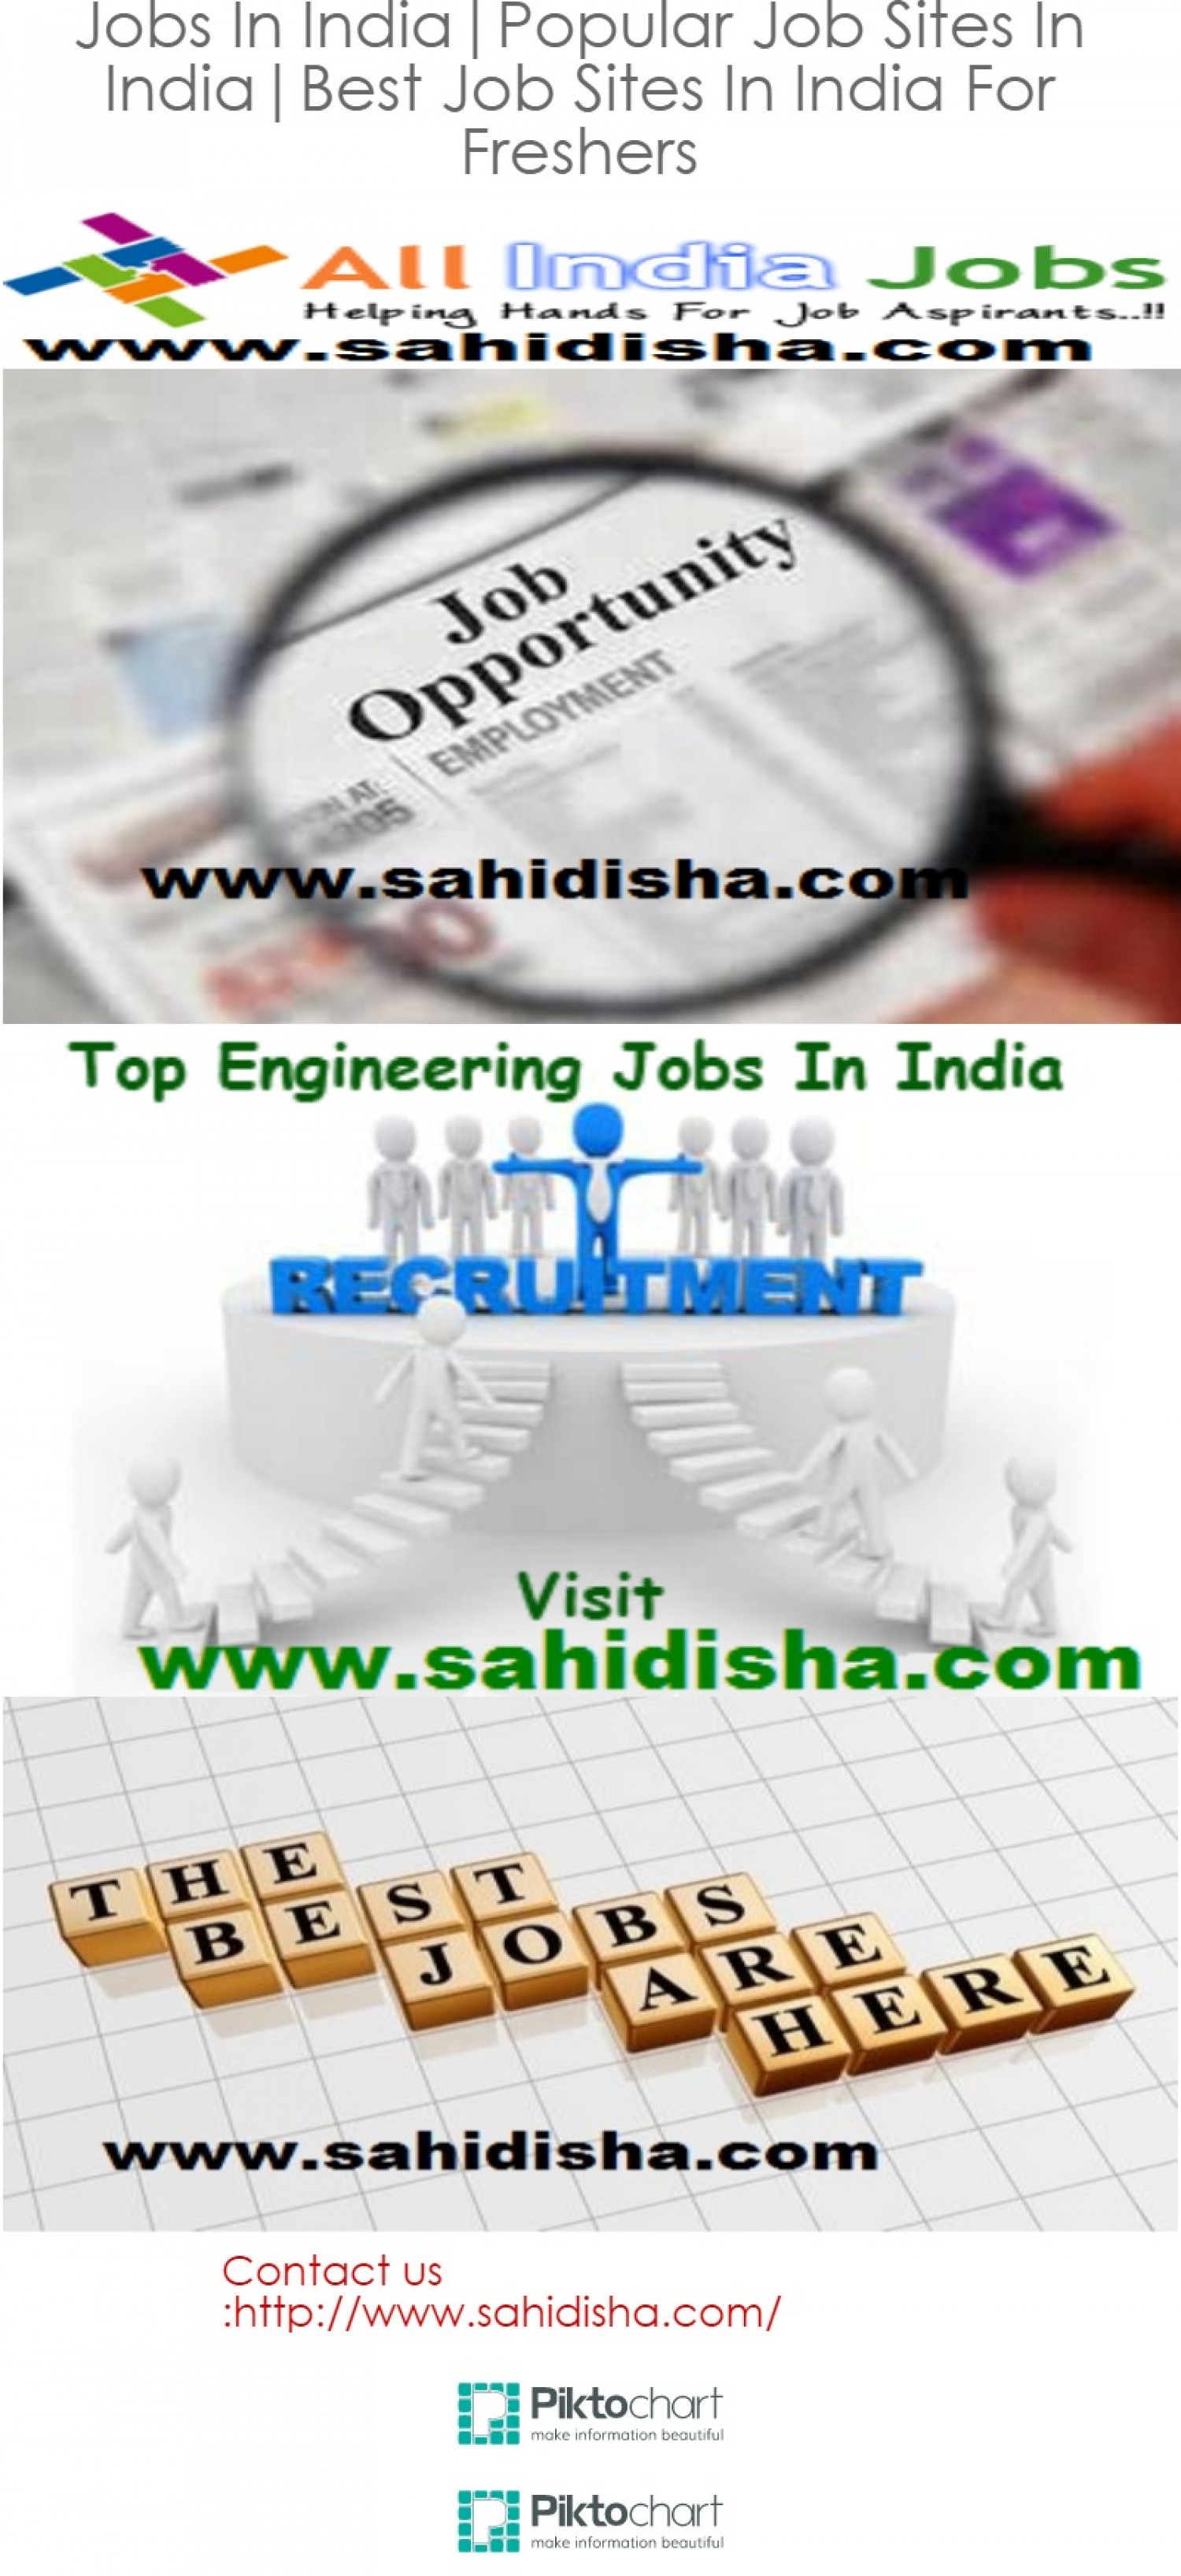 jobs in popular job sites in best job sites in jobs in popular job sites in best job sites in for